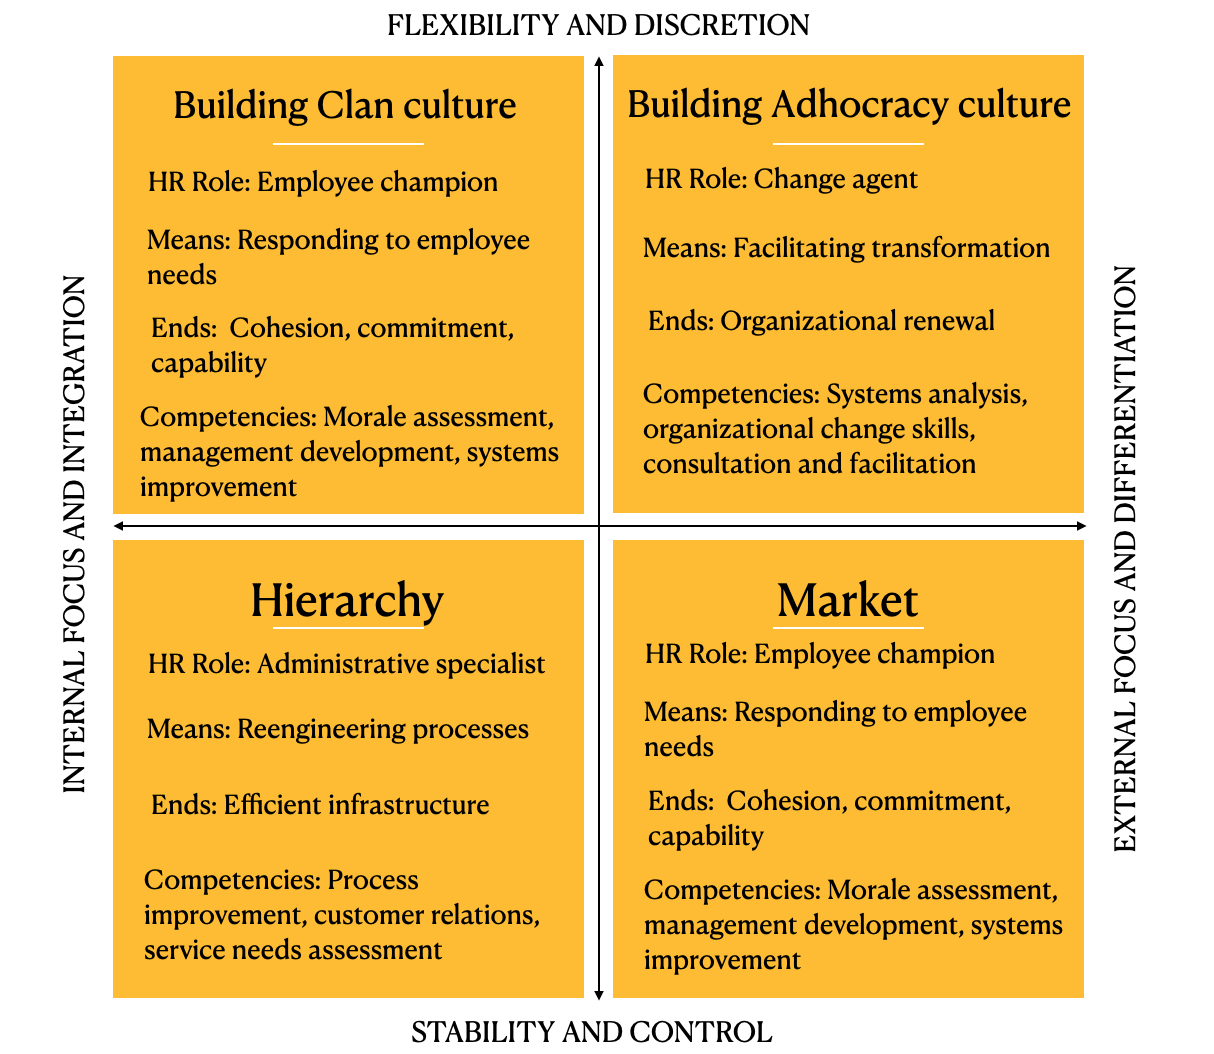 Competing values quadrant from an HR point of view